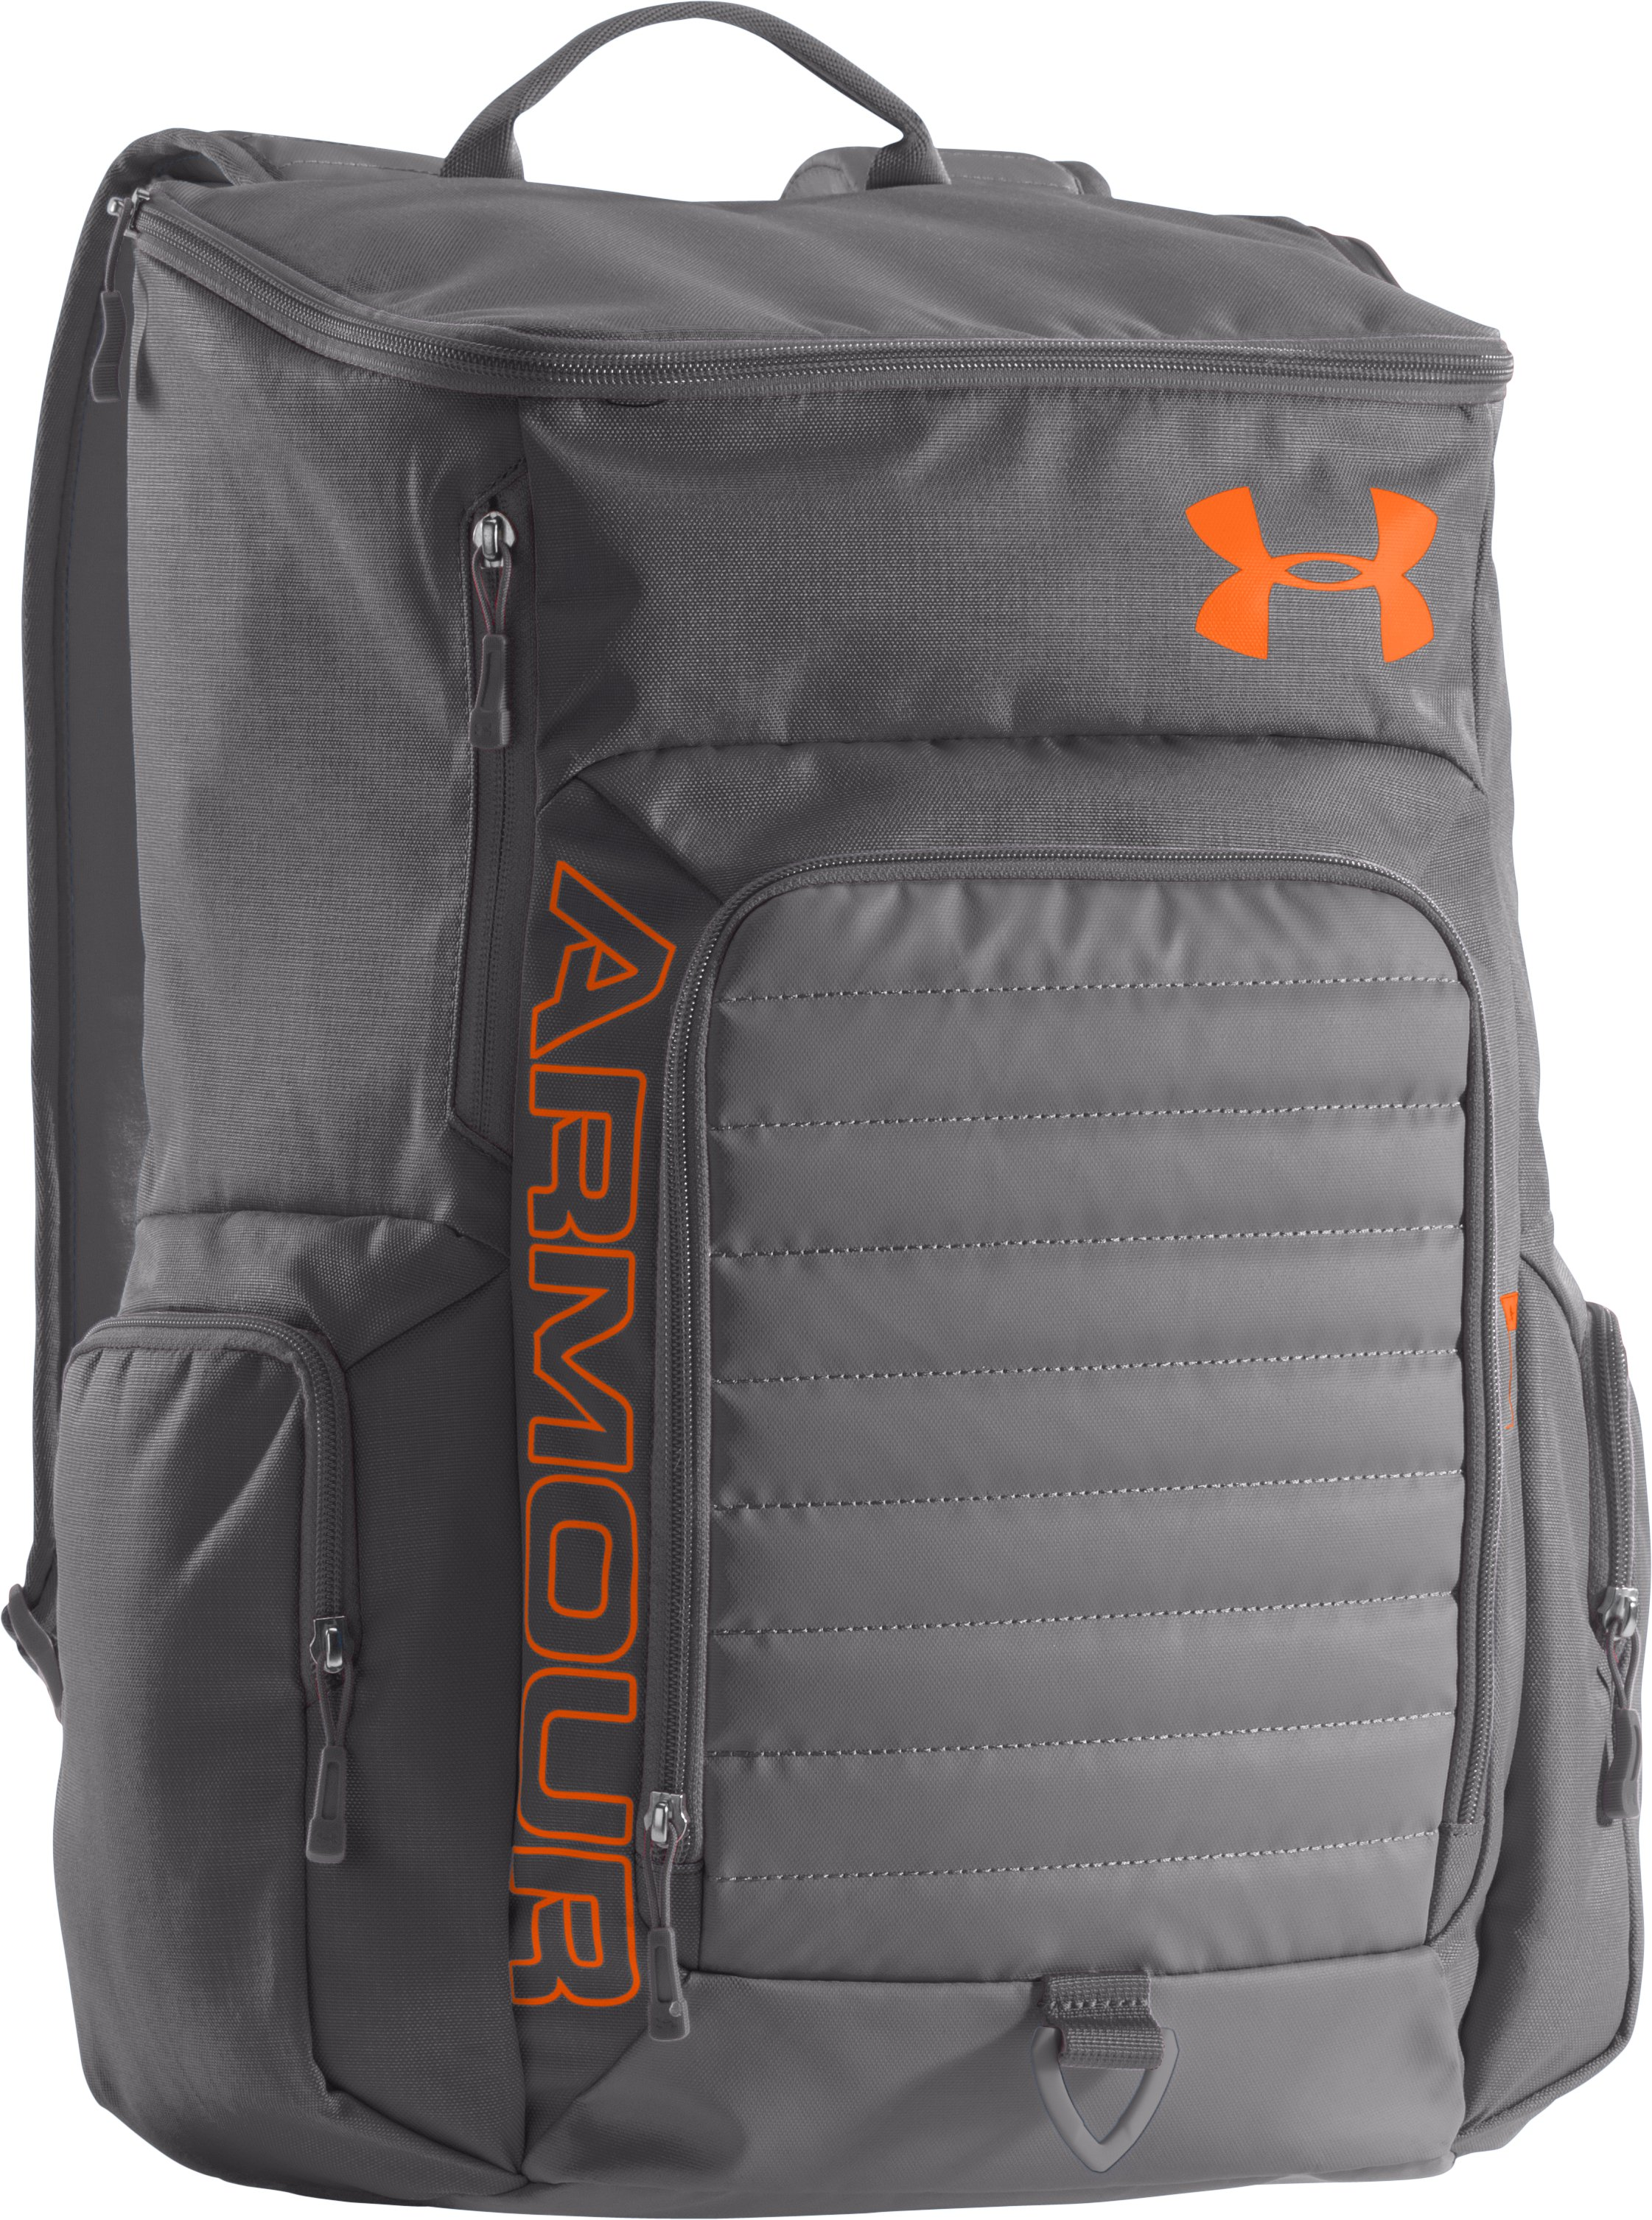 UA VX2-Undeniable Backpack, Graphite